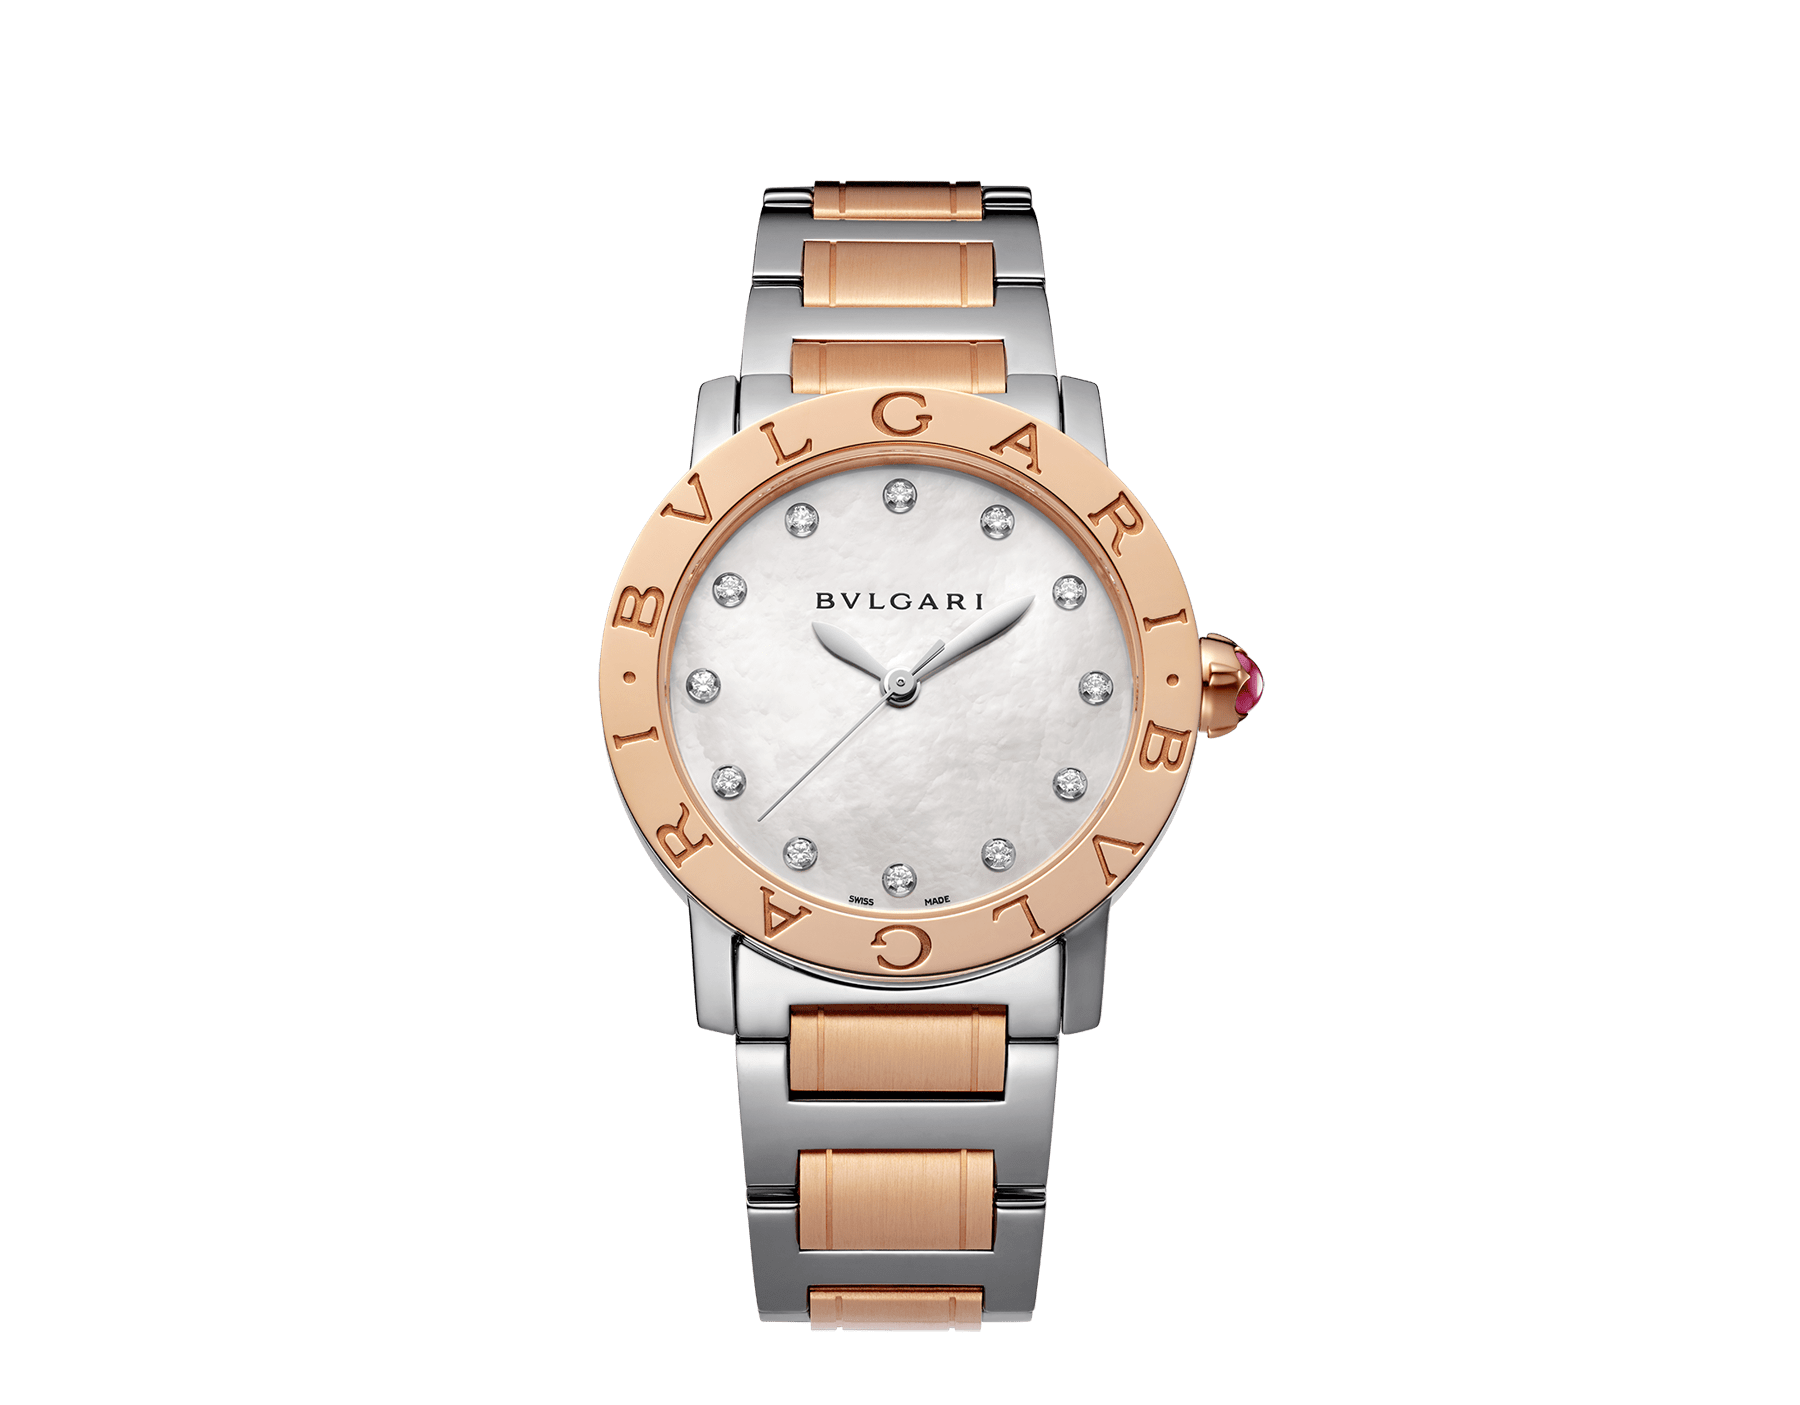 BVLGARI BVLGARI watch in 18 kt rose gold and stainless steel case and bracelet, with white mother-of-pearl dial and diamond indexes. Medium model 101891 image 1